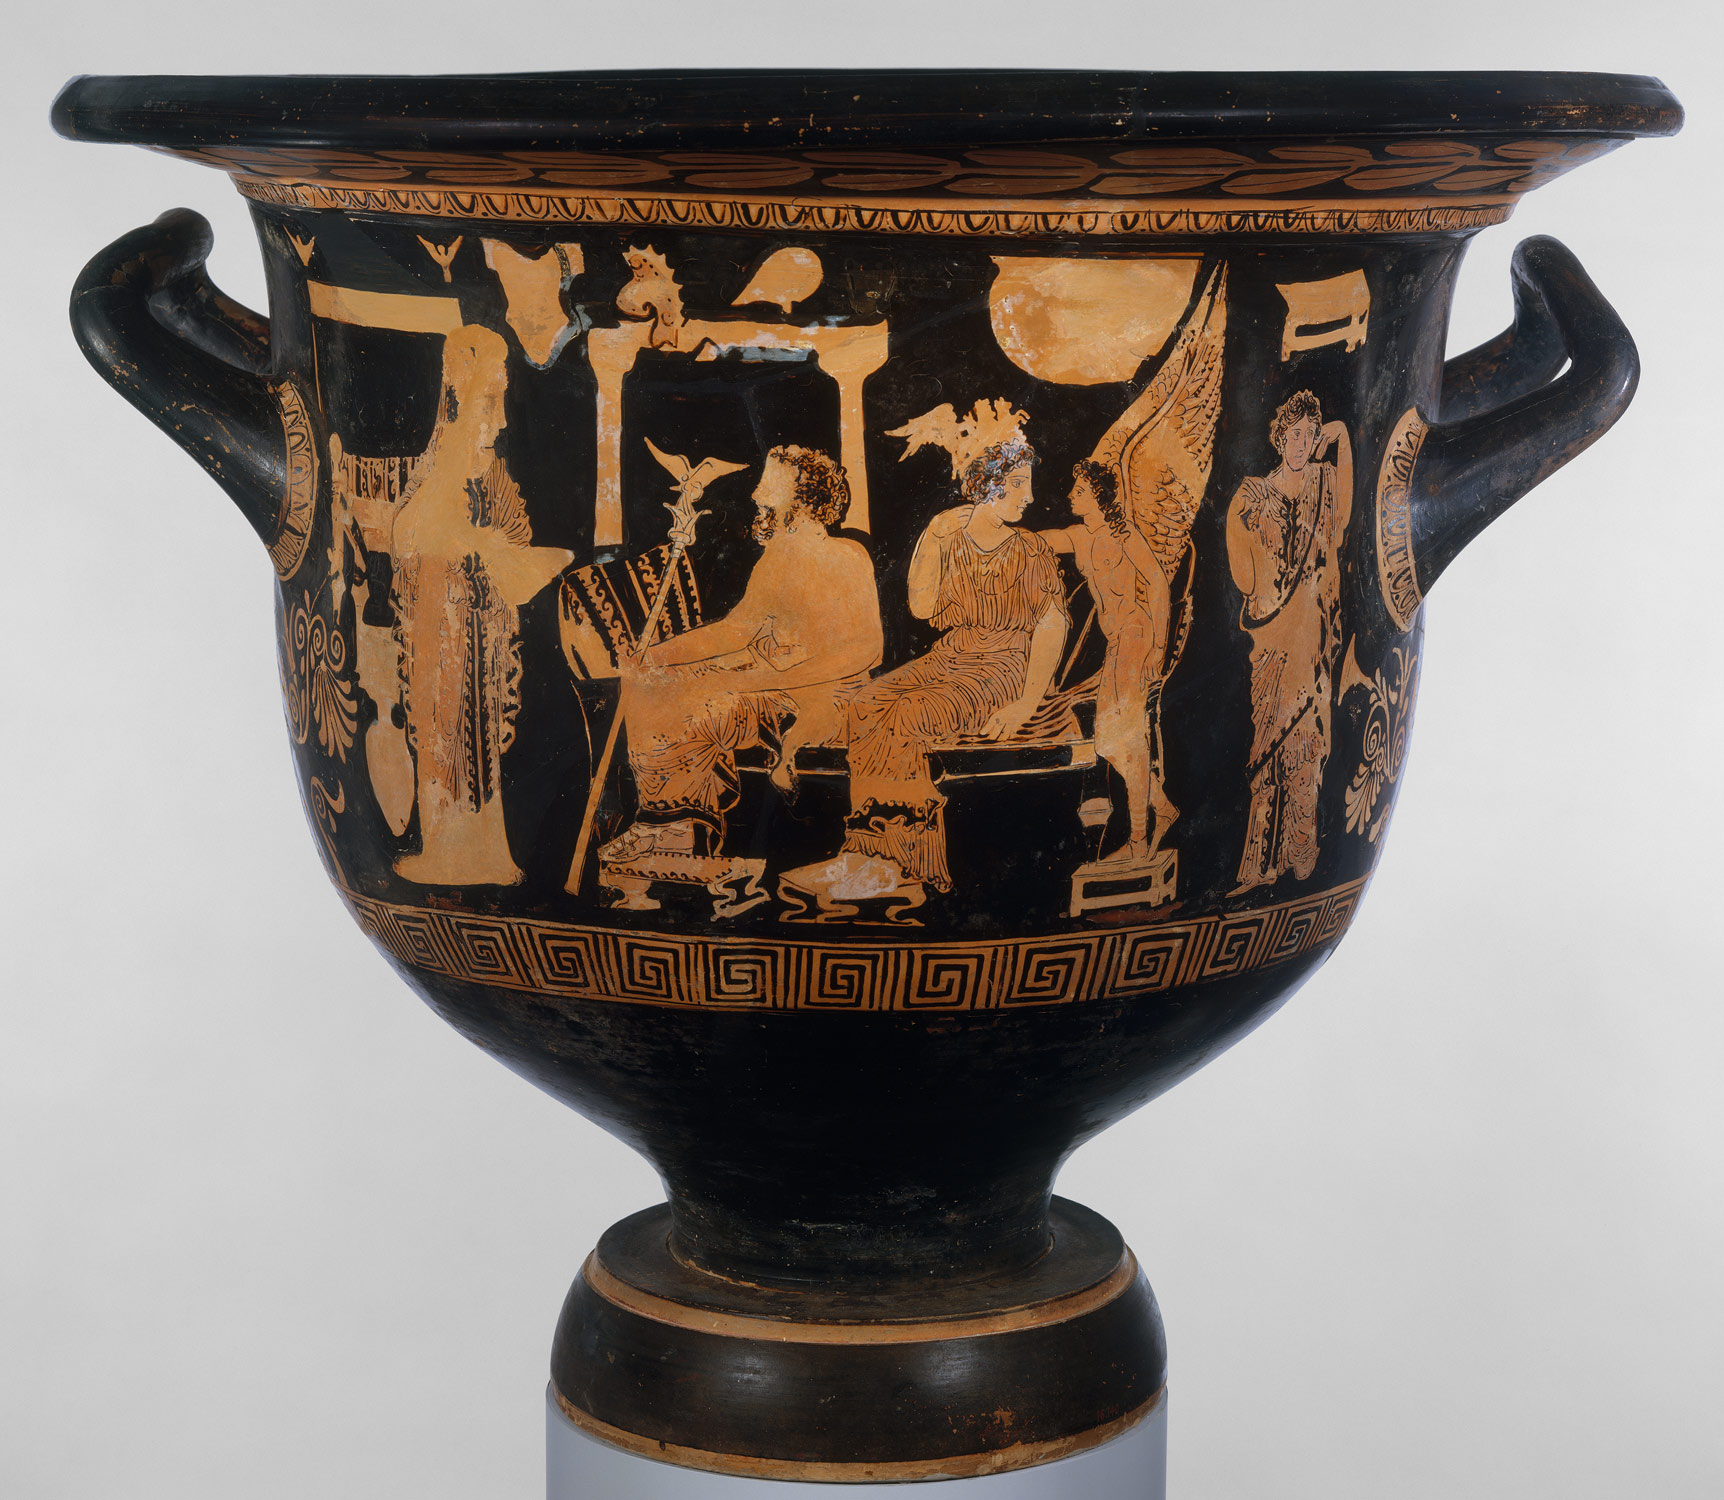 Terracotta bell-krater (mixing bowl)